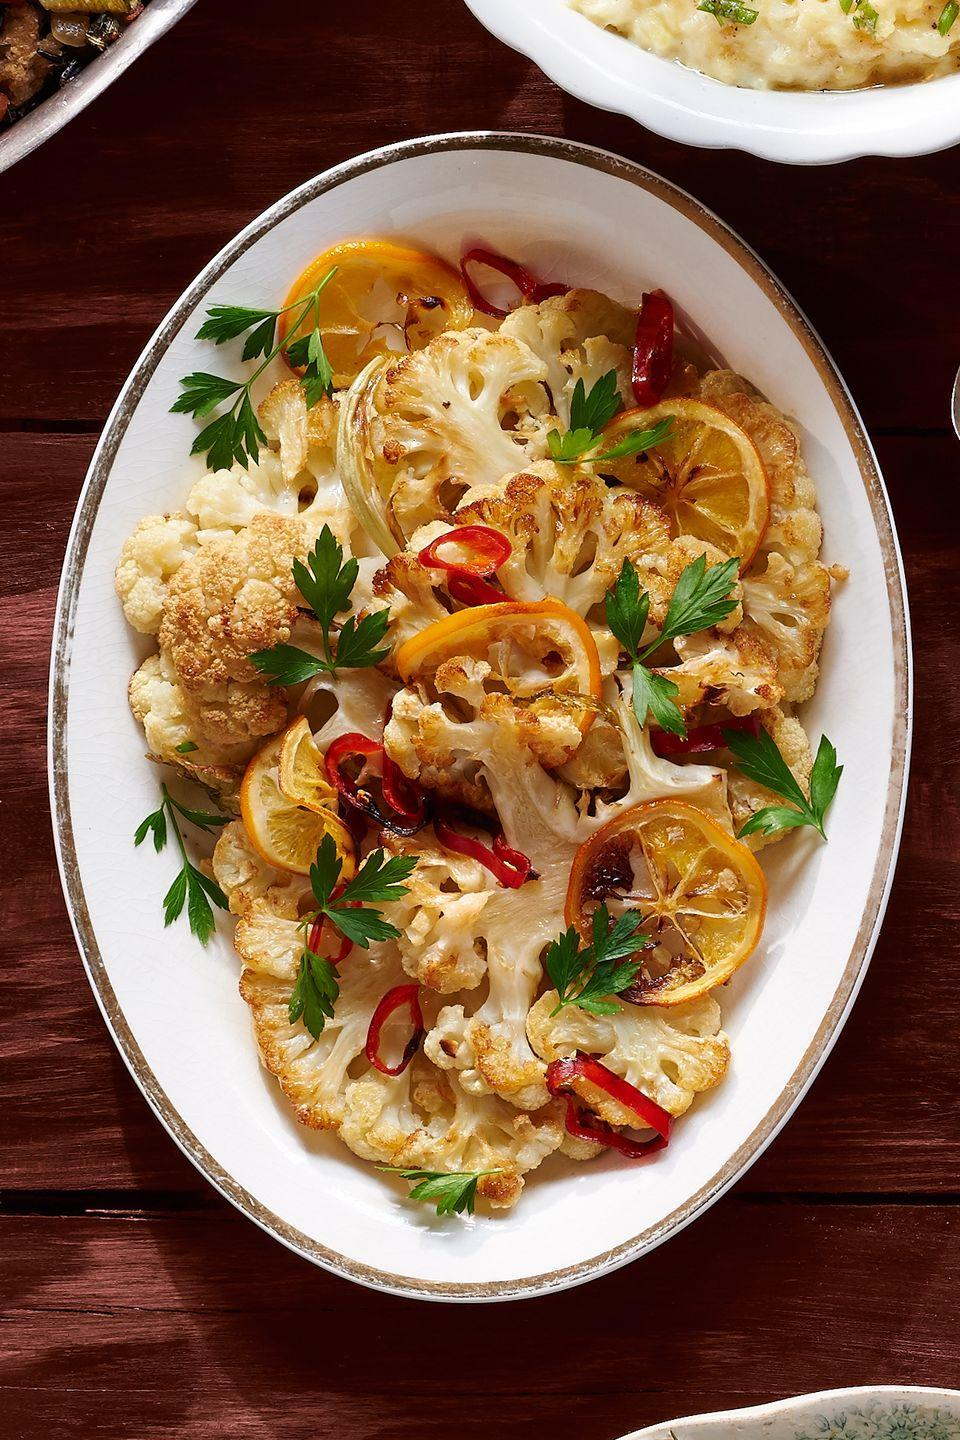 "<p>This spicy and citrusy side is sure to heat up your entire meal.</p><p><strong><a href=""https://www.countryliving.com/food-drinks/recipes/a36667/spicy-lemon-cauliflower/"" rel=""nofollow noopener"" target=""_blank"" data-ylk=""slk:Get the recipe"" class=""link rapid-noclick-resp"">Get the recipe</a>.</strong></p><p><a class=""link rapid-noclick-resp"" href=""https://www.amazon.com/dp/B00INRW7GC?tag=syn-yahoo-20&ascsubtag=%5Bartid%7C10050.g.896%5Bsrc%7Cyahoo-us"" rel=""nofollow noopener"" target=""_blank"" data-ylk=""slk:SHOP BAKING SHEETS"">SHOP BAKING SHEETS</a></p>"